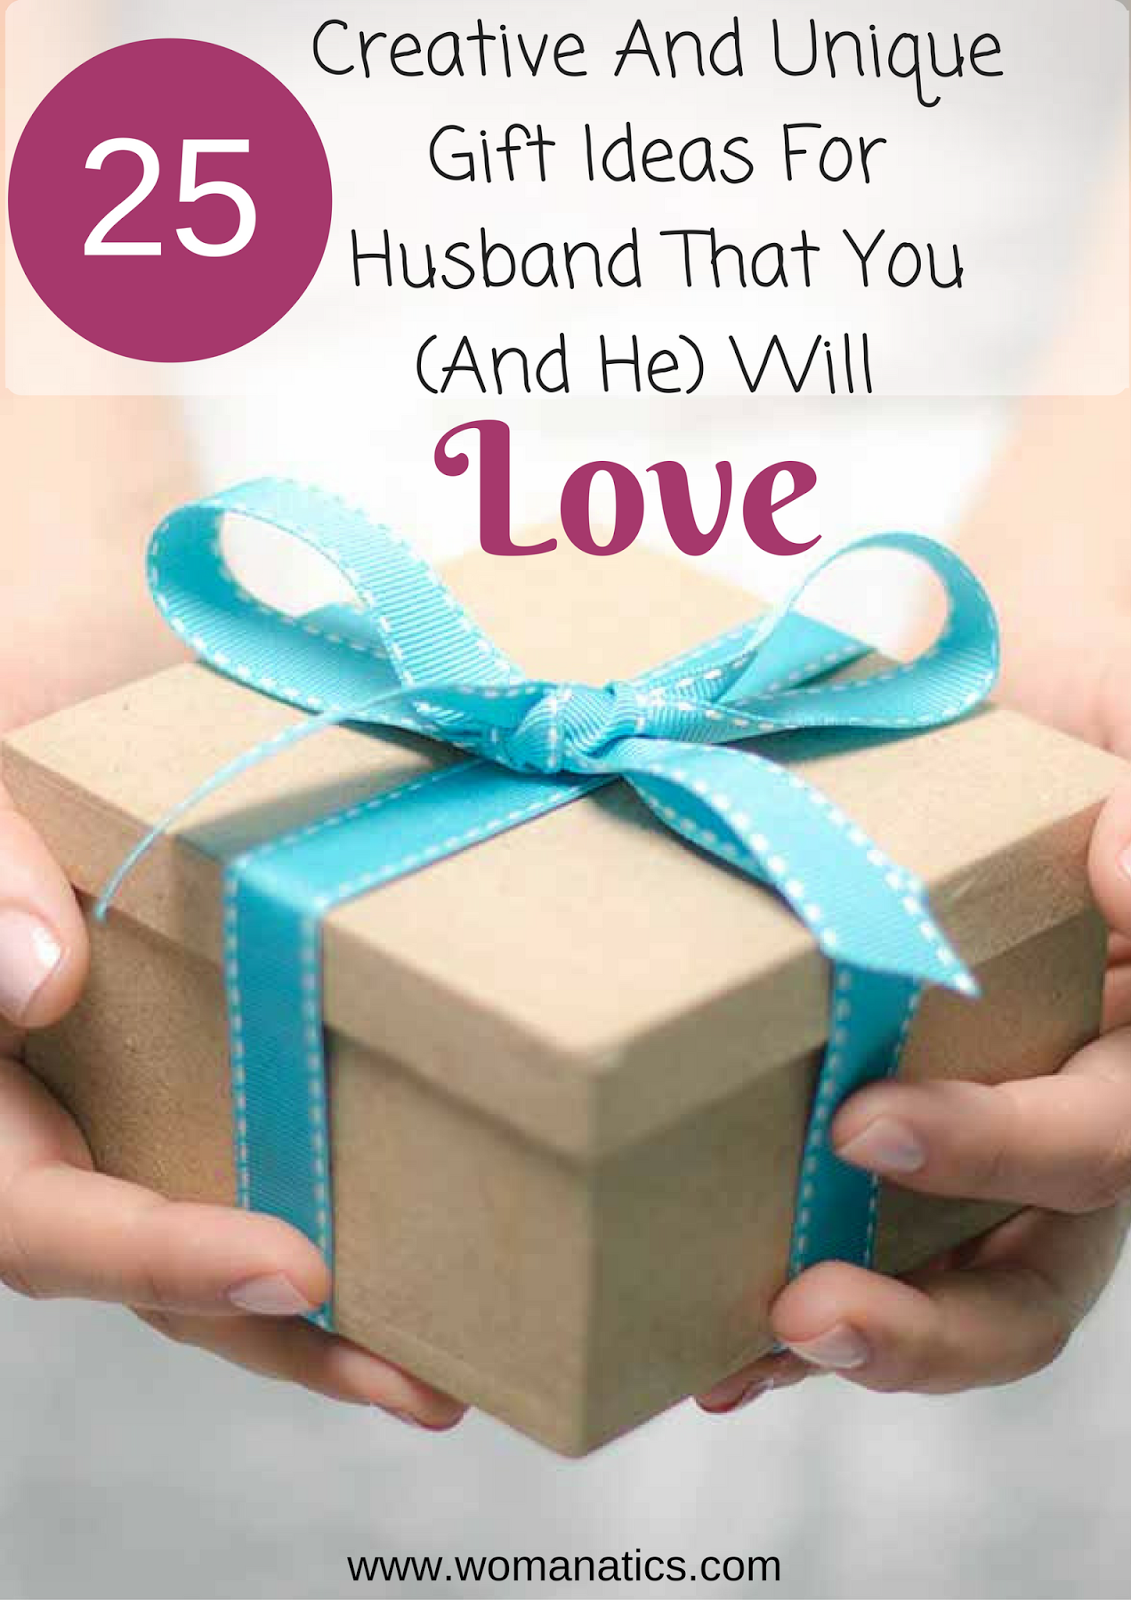 25 Creative And Unique Gift Ideas For Husbands Birthday That You He Will Love